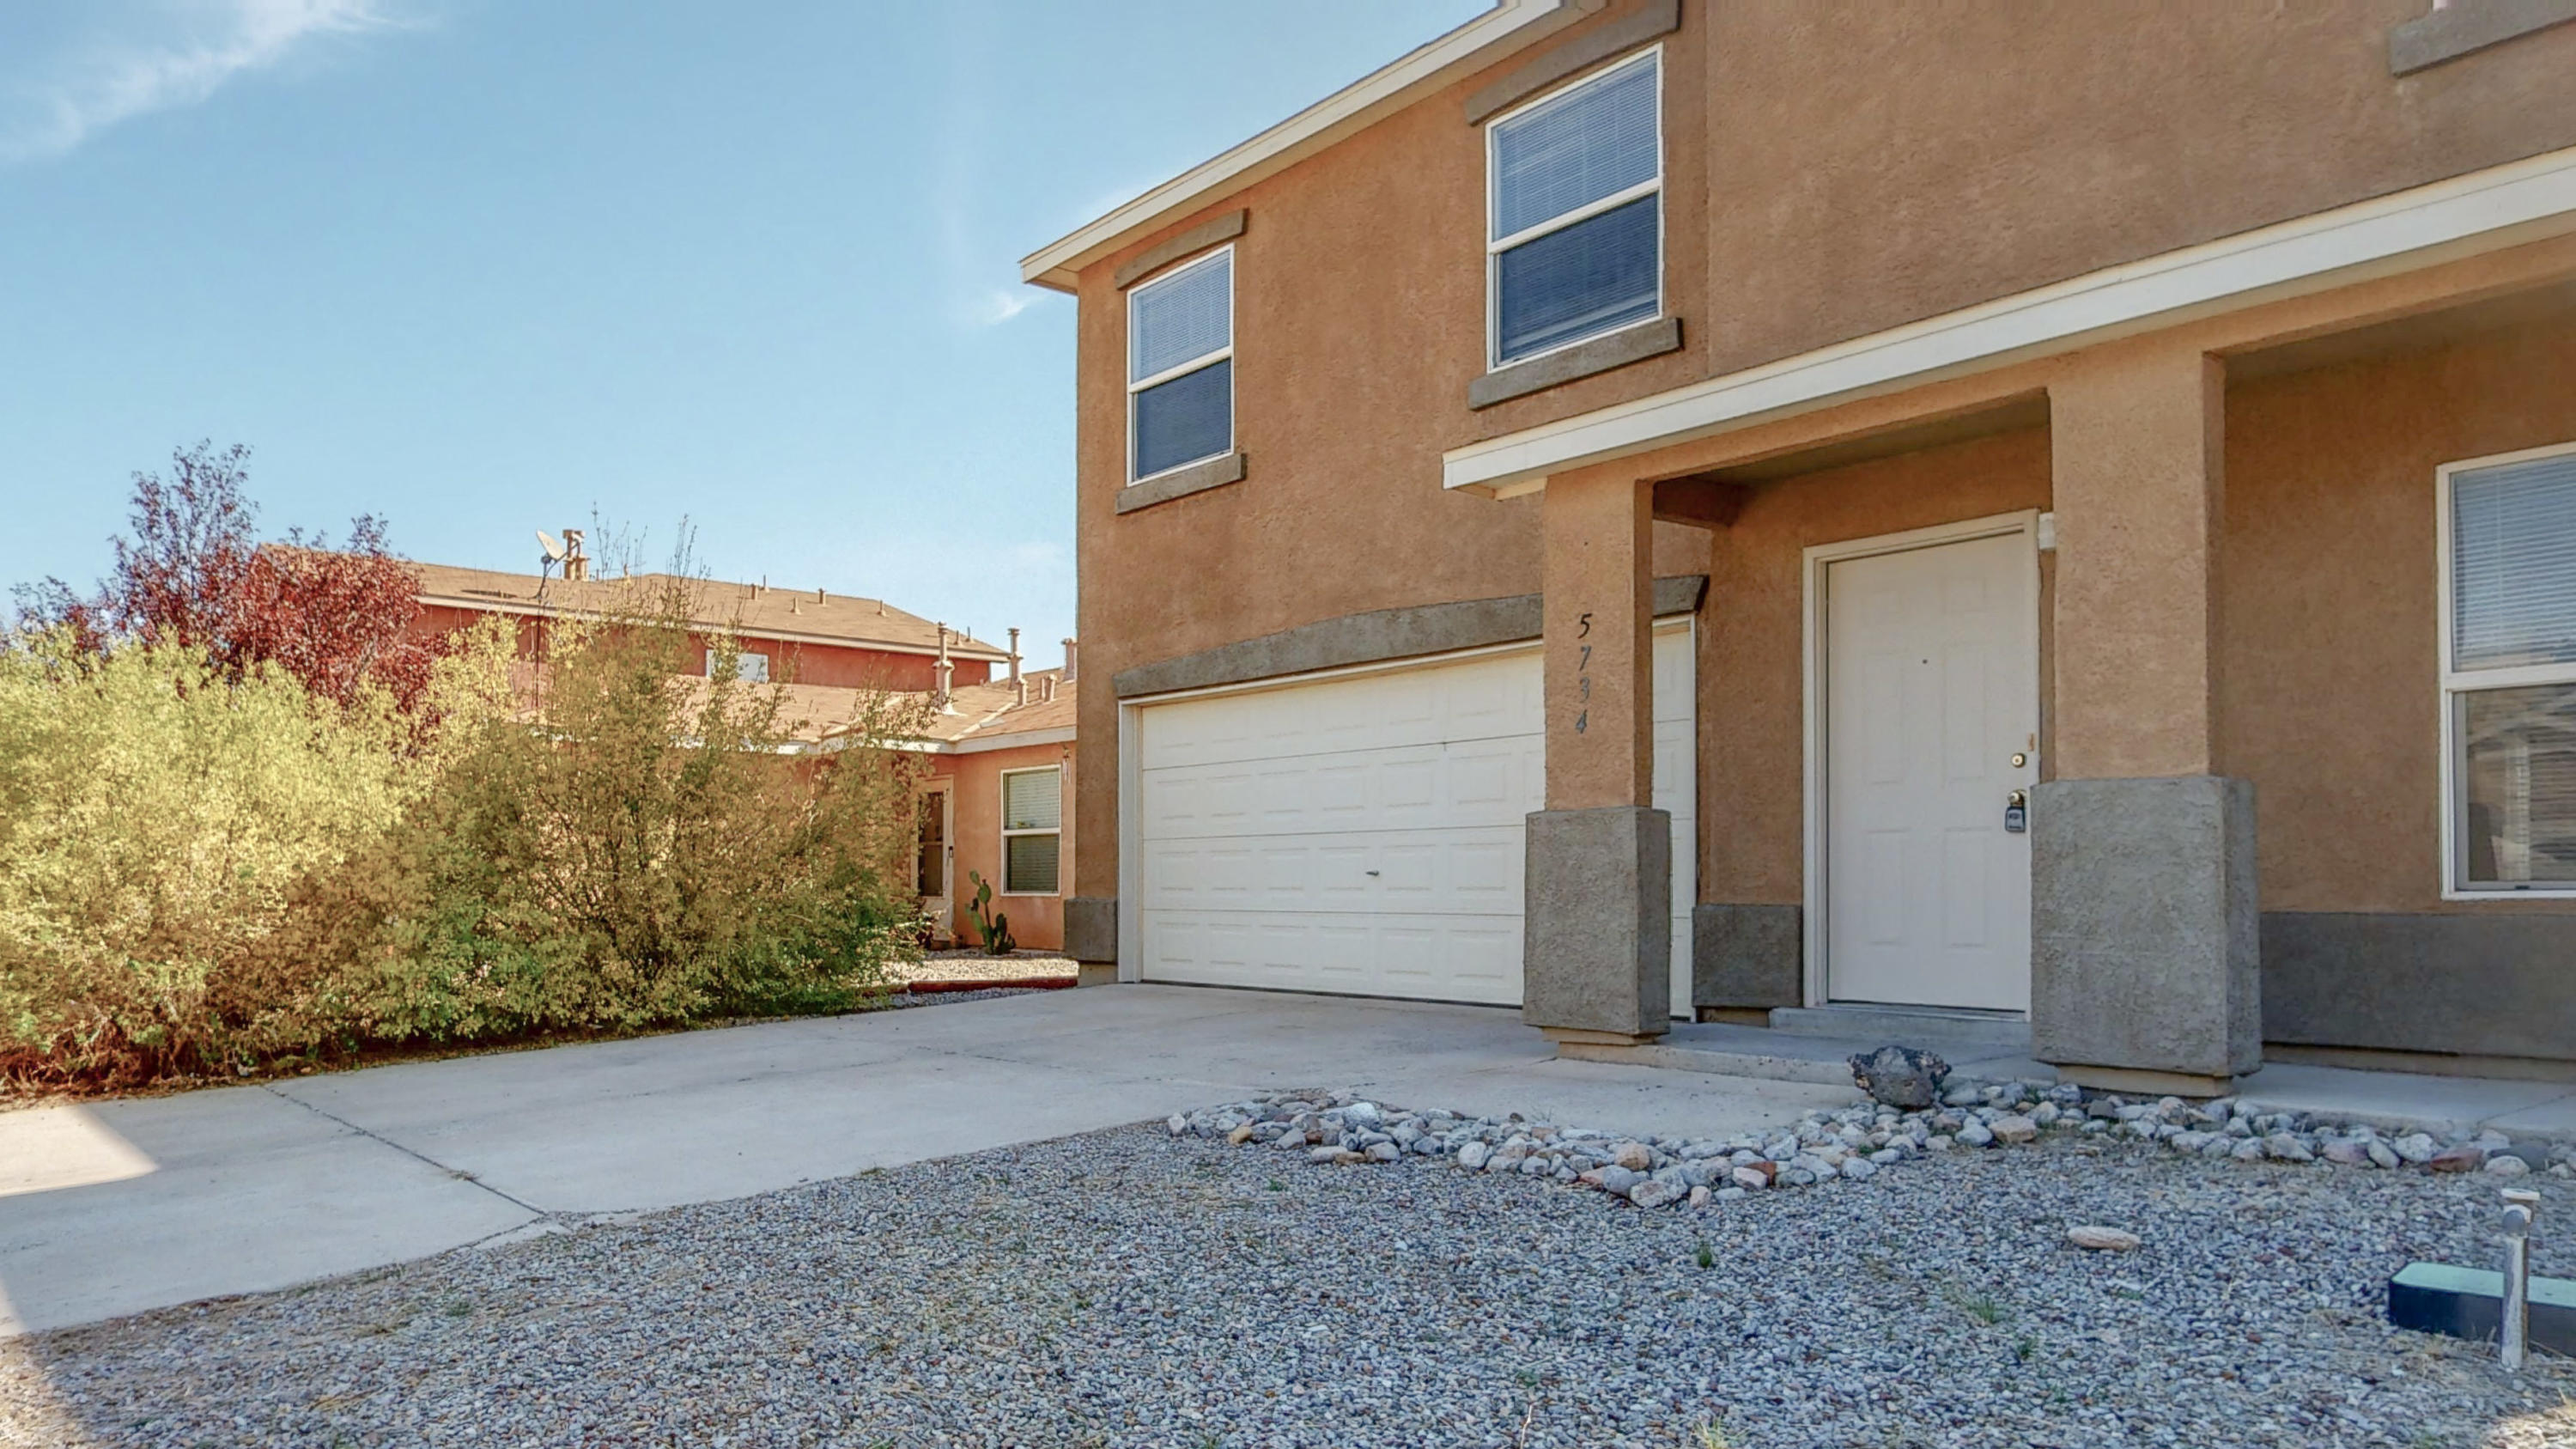 Move in Ready 4BR/2.5BTH Home in Enchanted Hills.  This home is very spacious at 2573 Square Feet!  Additional features include:**2 living areas with open concept kitchen**Kitchen island**Fresh paint throughout.**All new carpet and pad**Huge master bedroom with walk in closet**Dual sinks in master bath along with separate tub and shower**Refrigerated air conditioning and central gas heat**This home is in the Rio Rancho school district and offers an EZ commute to Santa Fe and Albuquerque....Welcome Home!